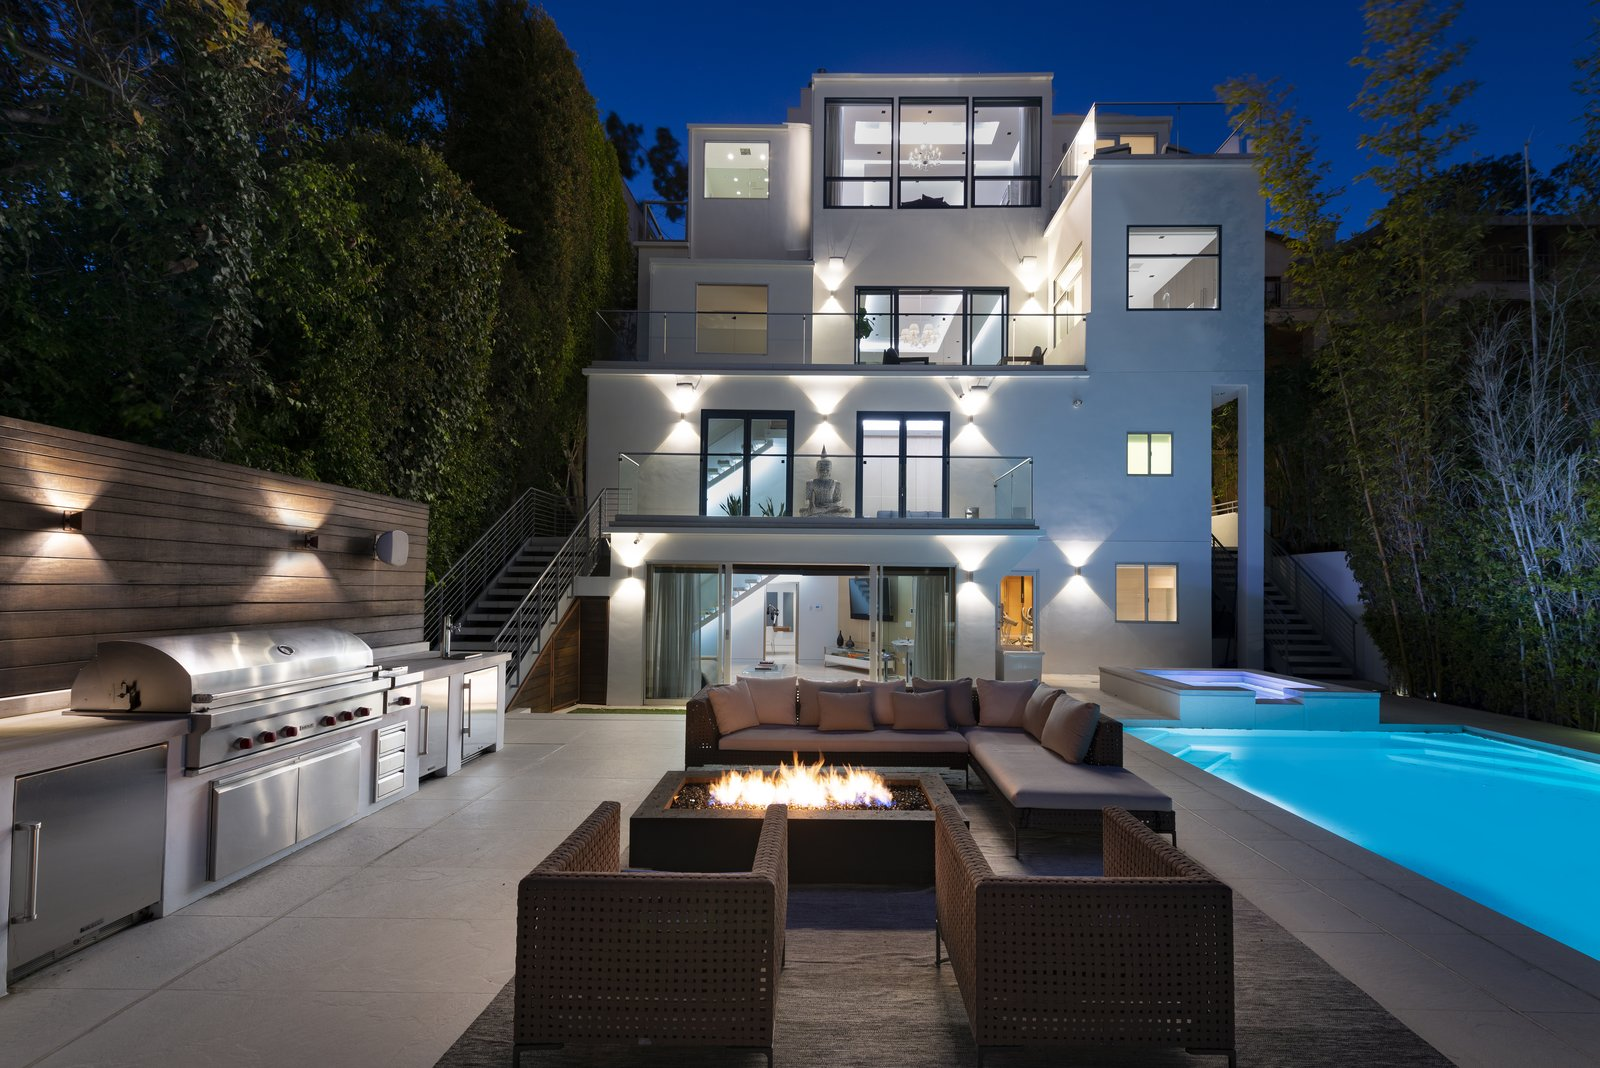 The home at night. Note the high privacy hedges that rim the outdoor space.